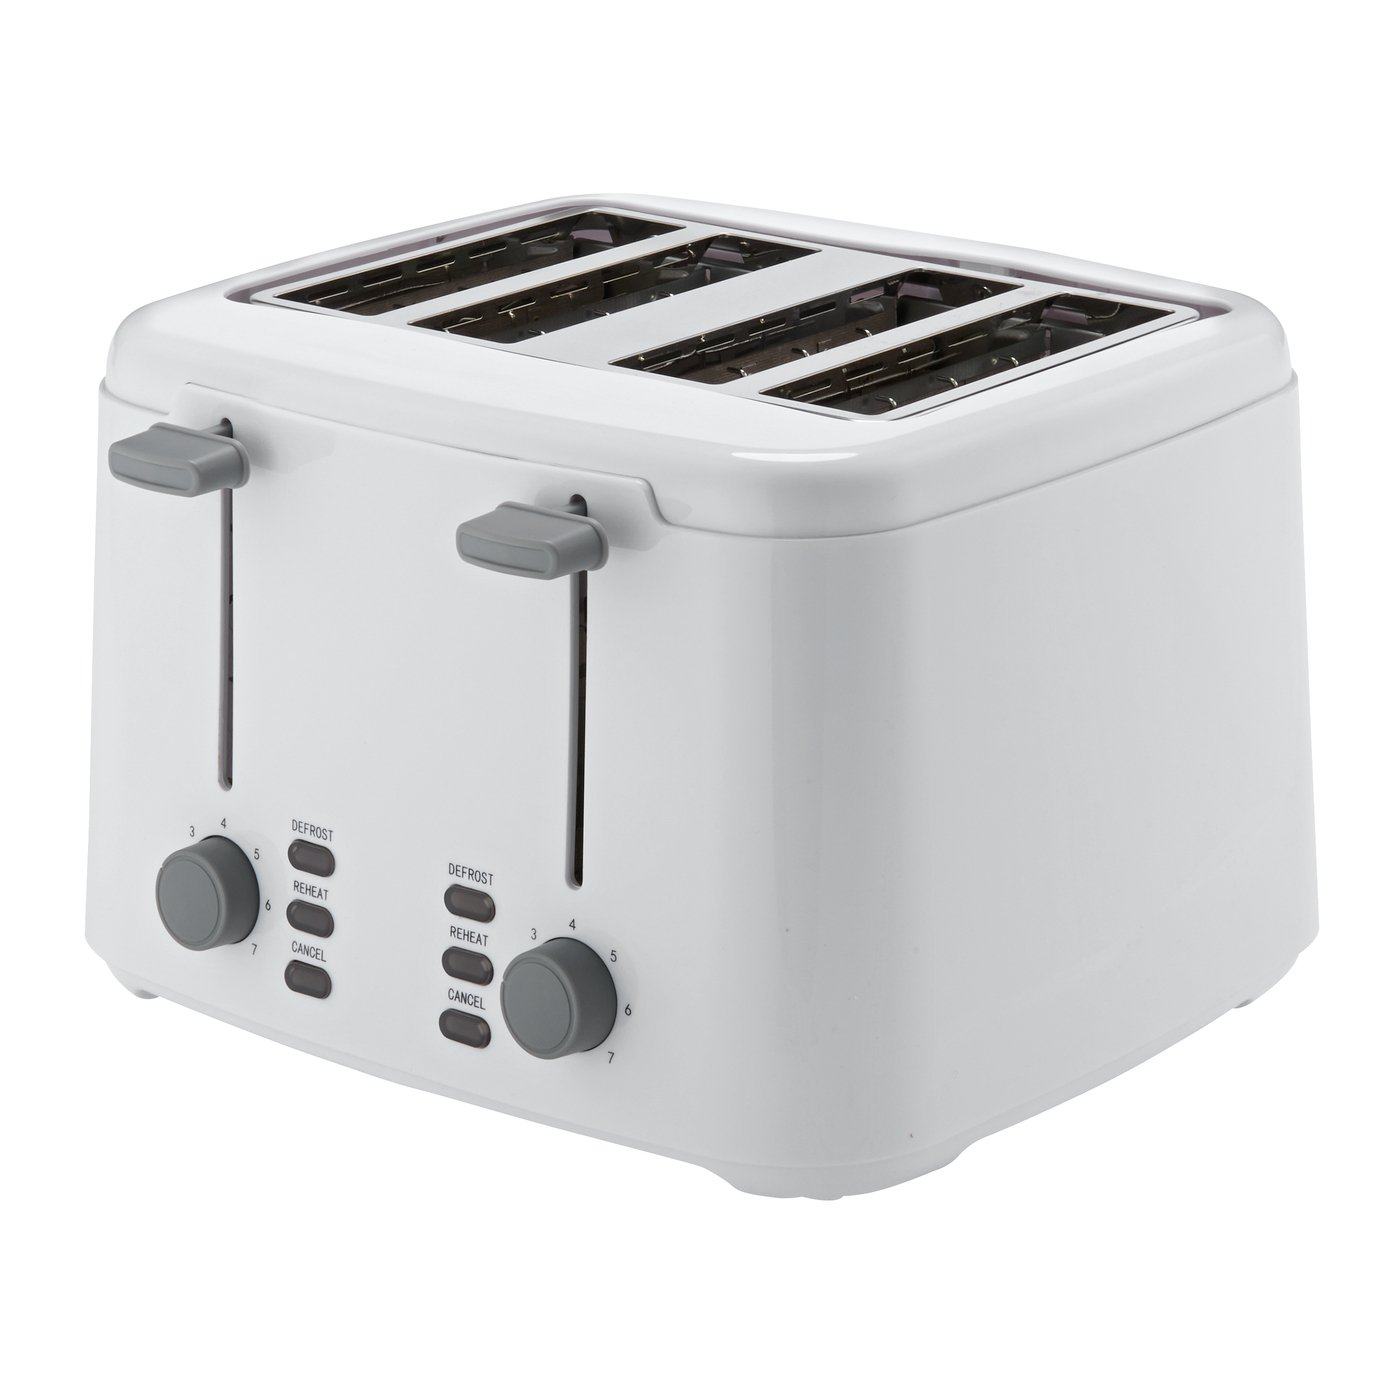 Cookworks 4 Slice Toaster - White